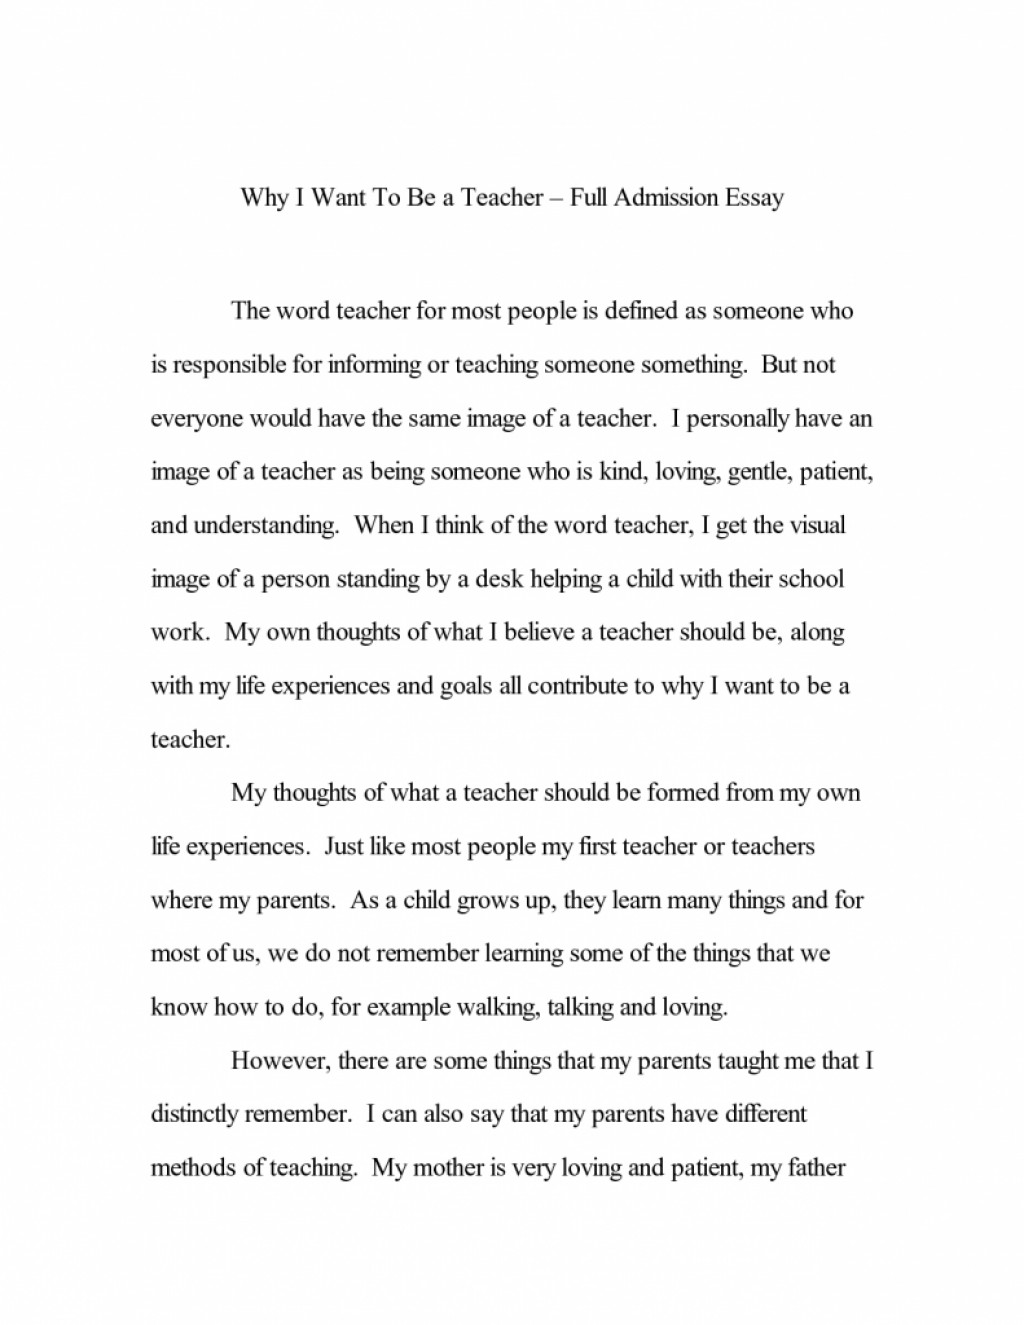 015 Words Essay Example Help Writing An For College Admissions Spectacular Application Examples Impressive 500 Word Scholarship Samples On My Favourite Teacher In Hindi Large